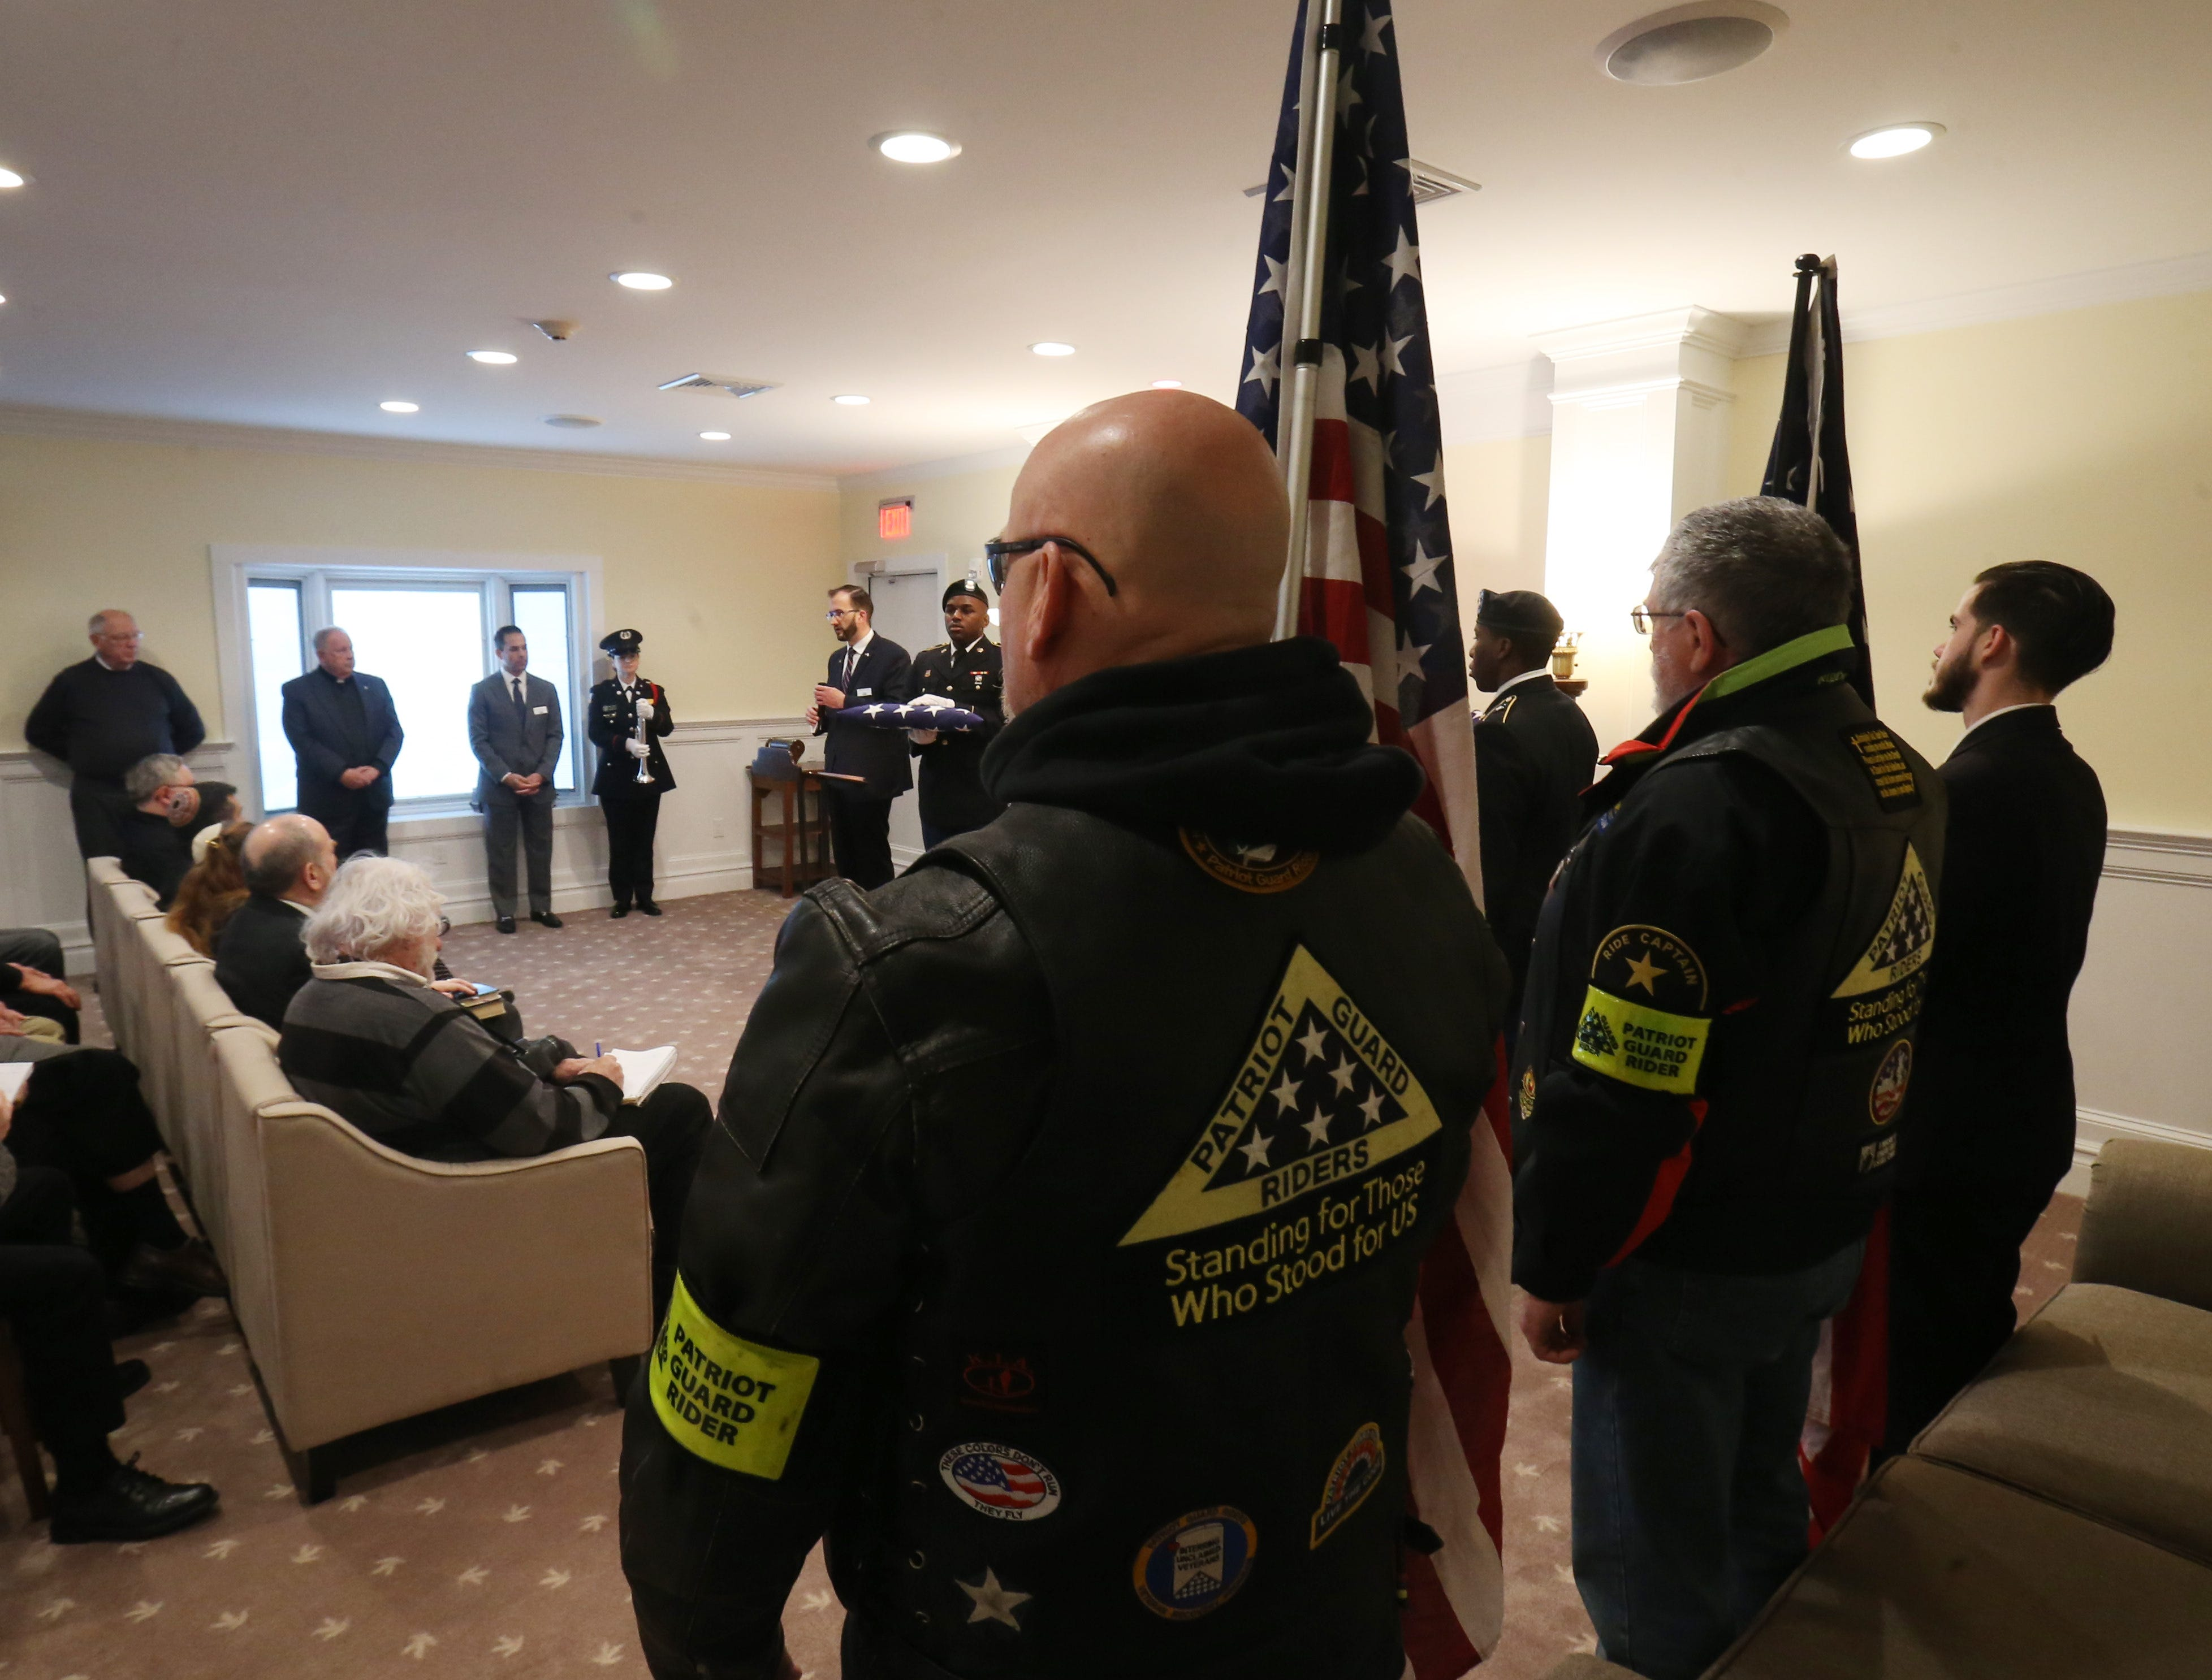 Patriot Guards, from left Ken Titland  and Bob Boisvert stand in attendance of Thursday's memorial service for four veterans at Libby Funeral Home in Beacon on January 10, 2019. The Patriot Guard accompanied the cremains on their way to Calverton National Cemetery on Long Island.